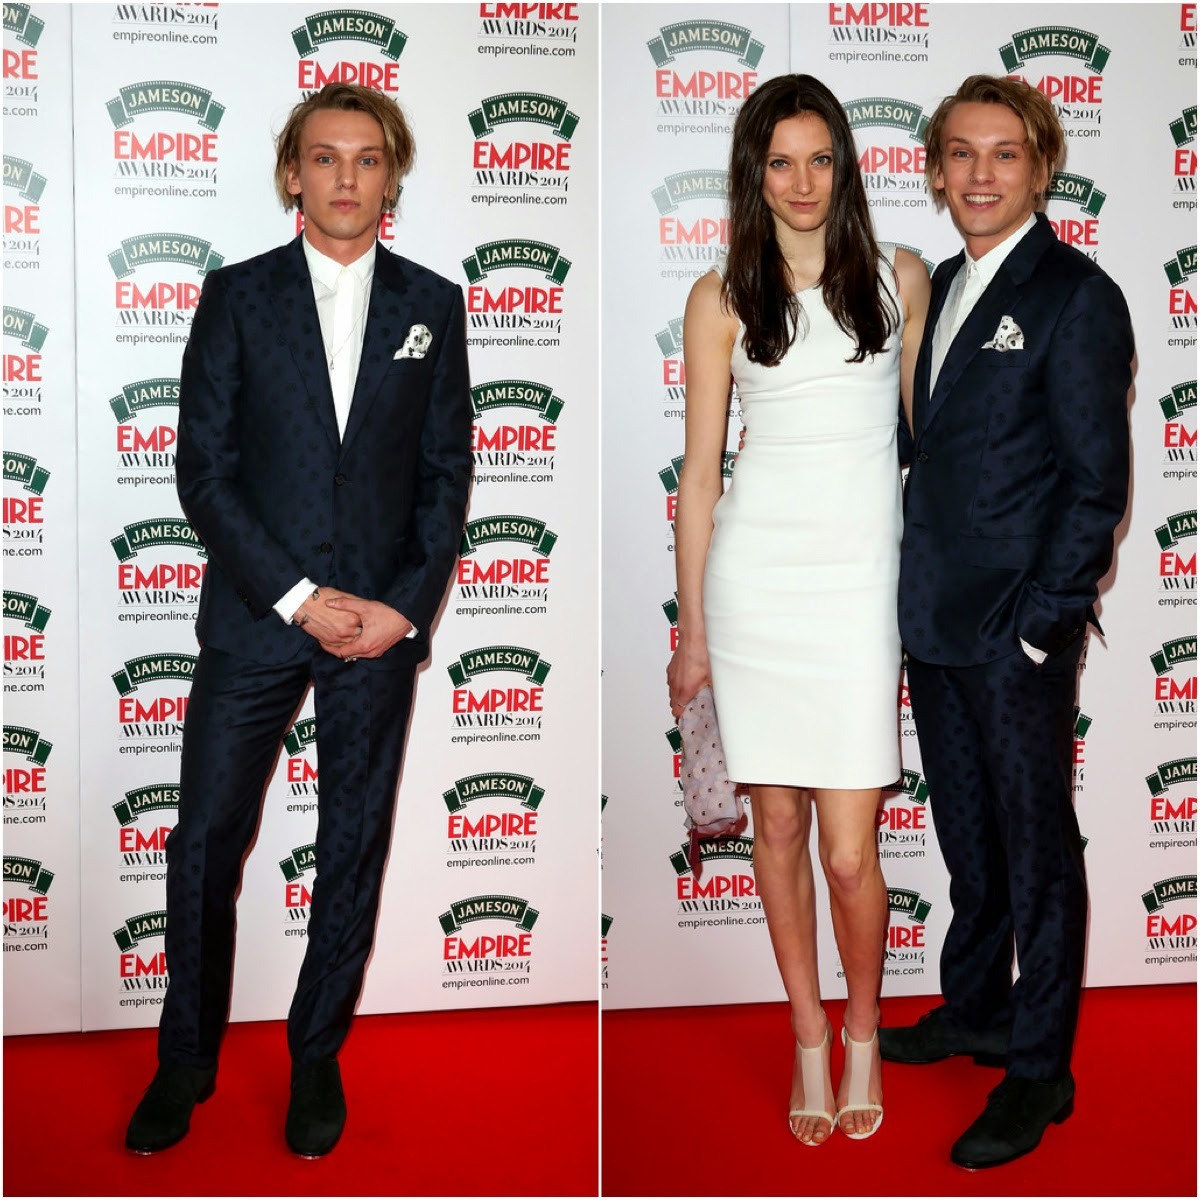 Jamie Campbell Bower in Alexander McQueen - Jameson Empire Awards 2014